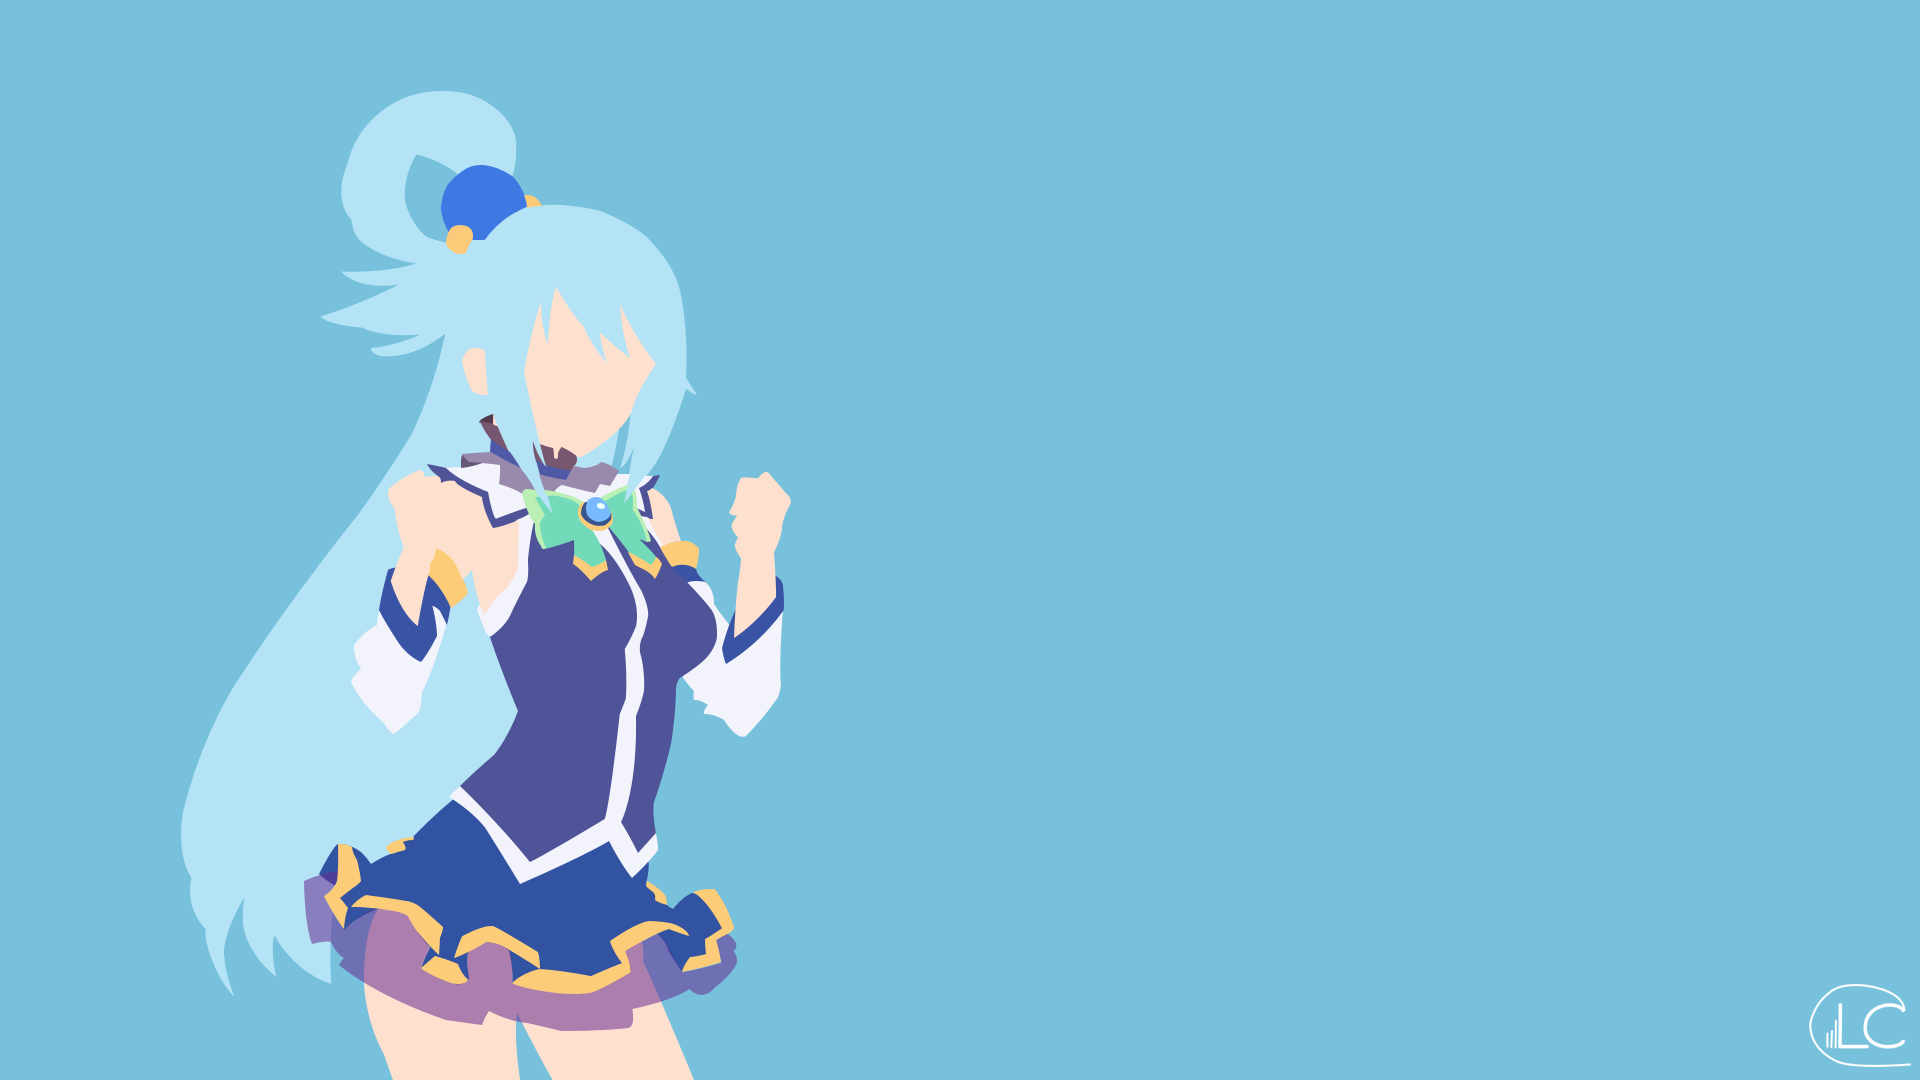 Aqua konosuba minimalist anime by lucifer012 on deviantart for Deviantart minimal wallpaper